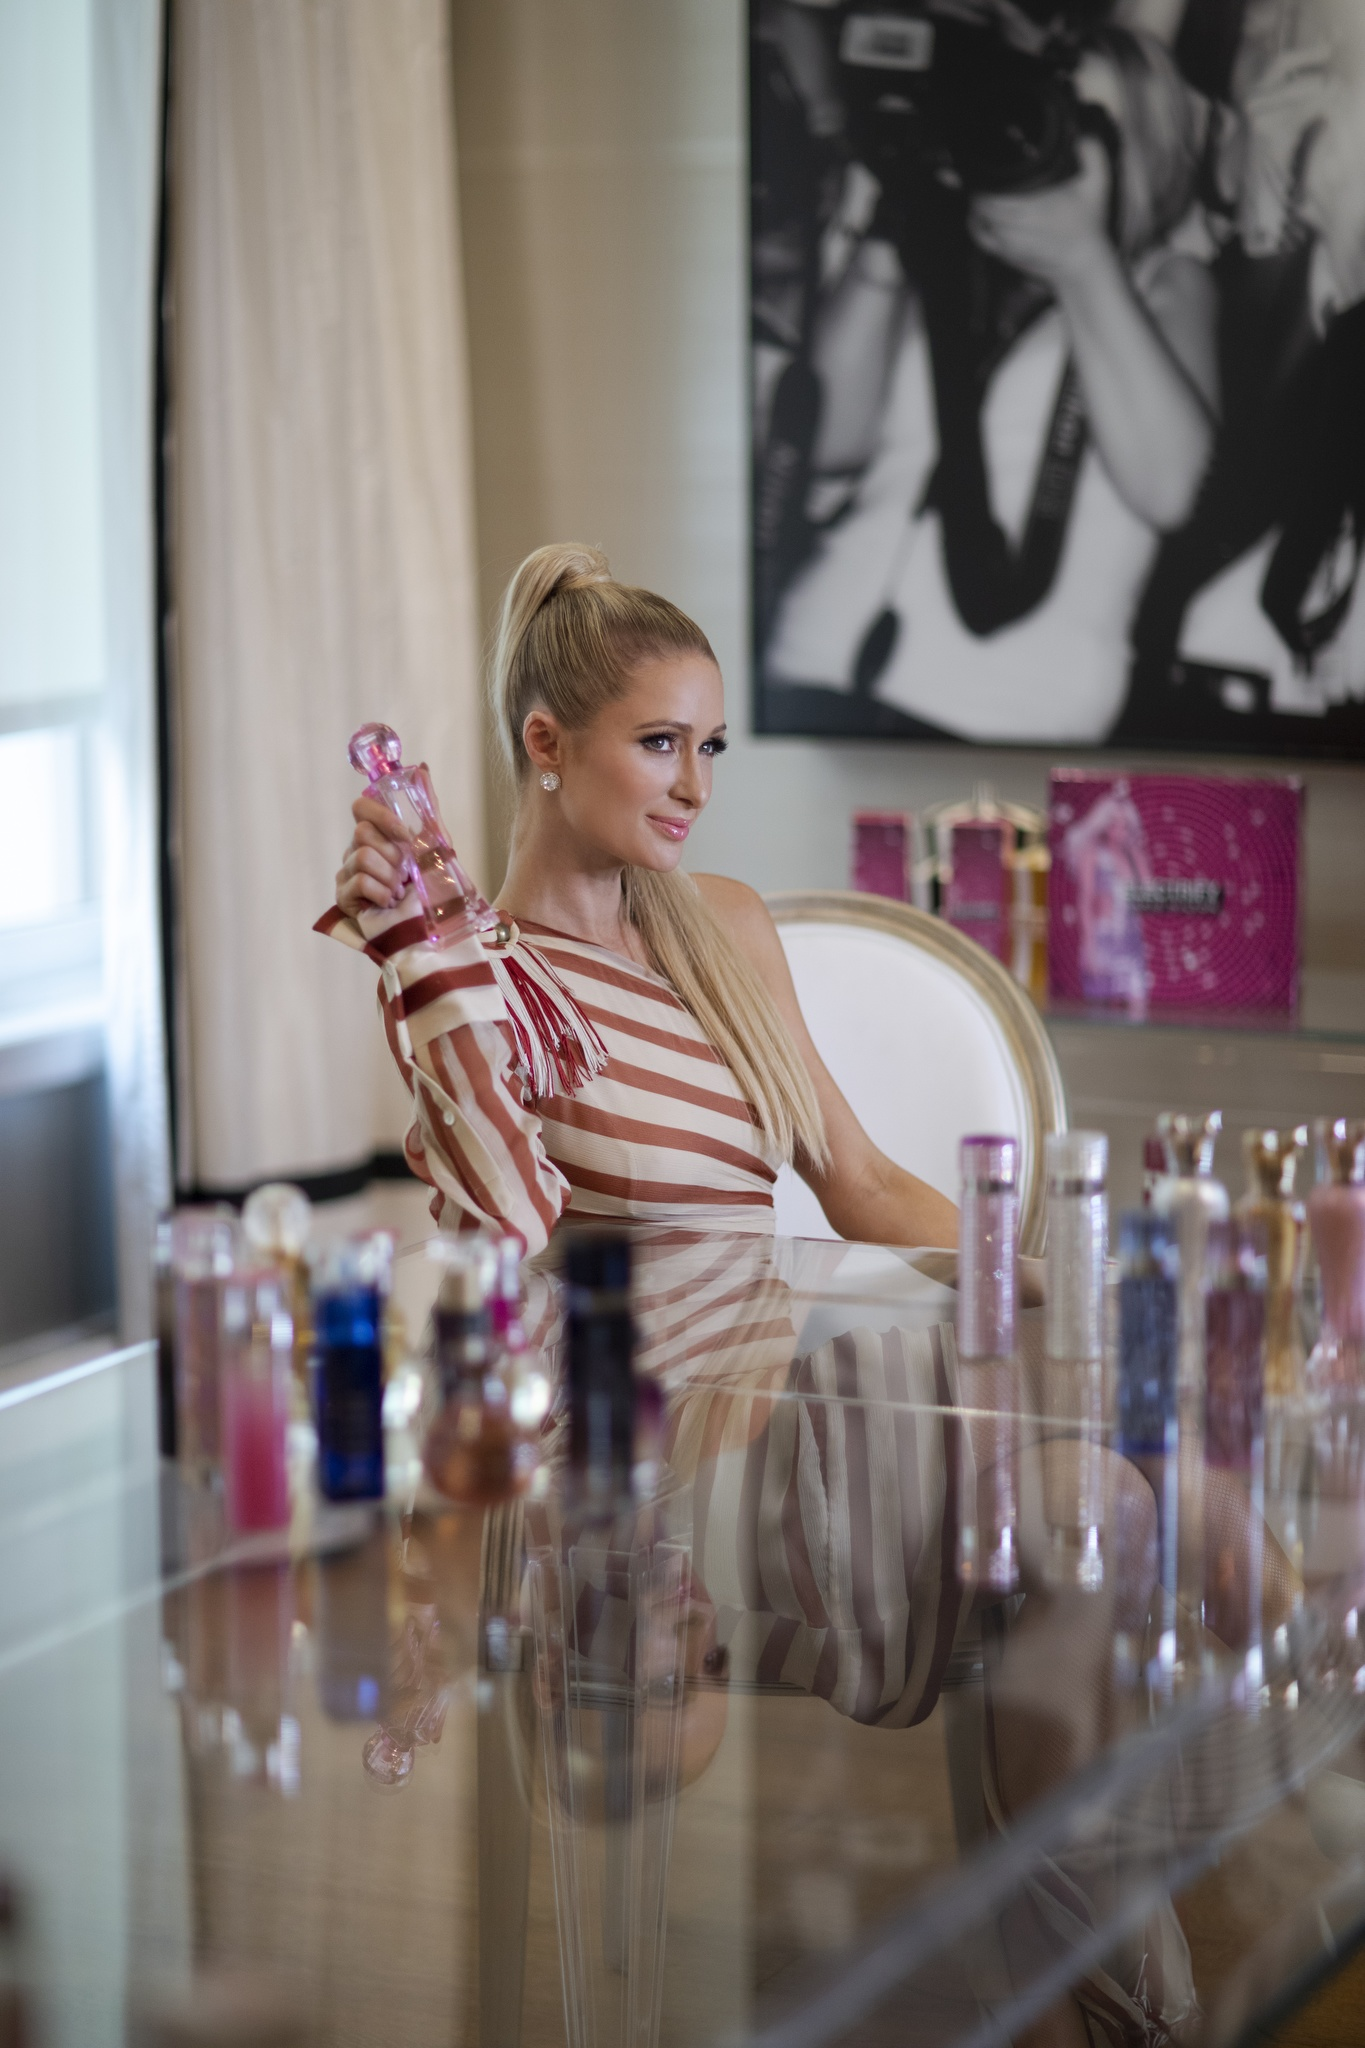 Paris Hilton in her home in New York City.